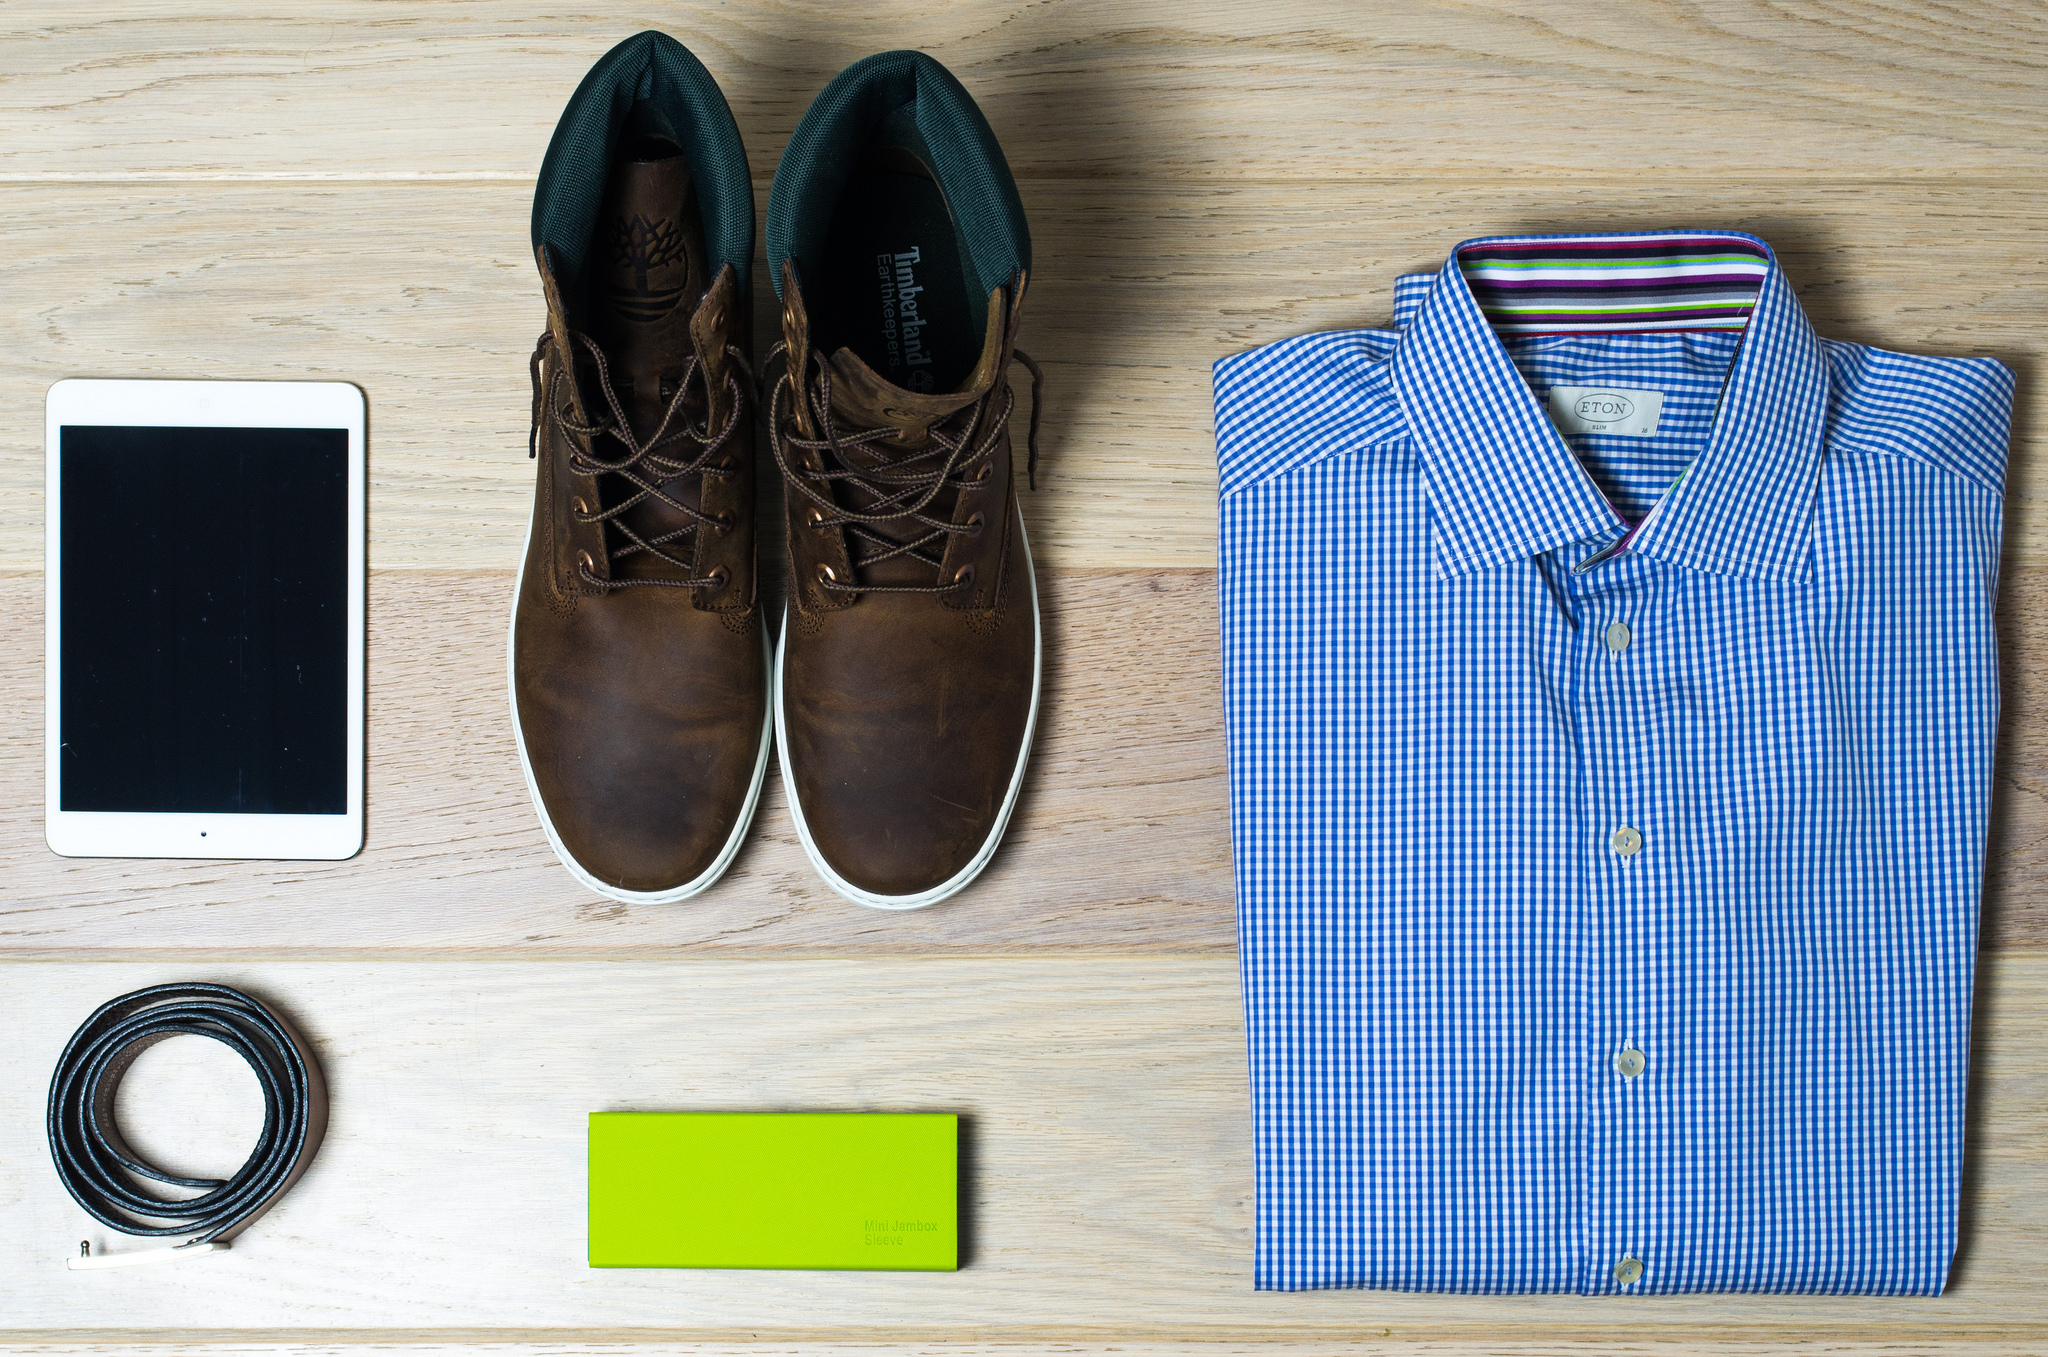 a pair of men's shoes, shirt, and an iPad